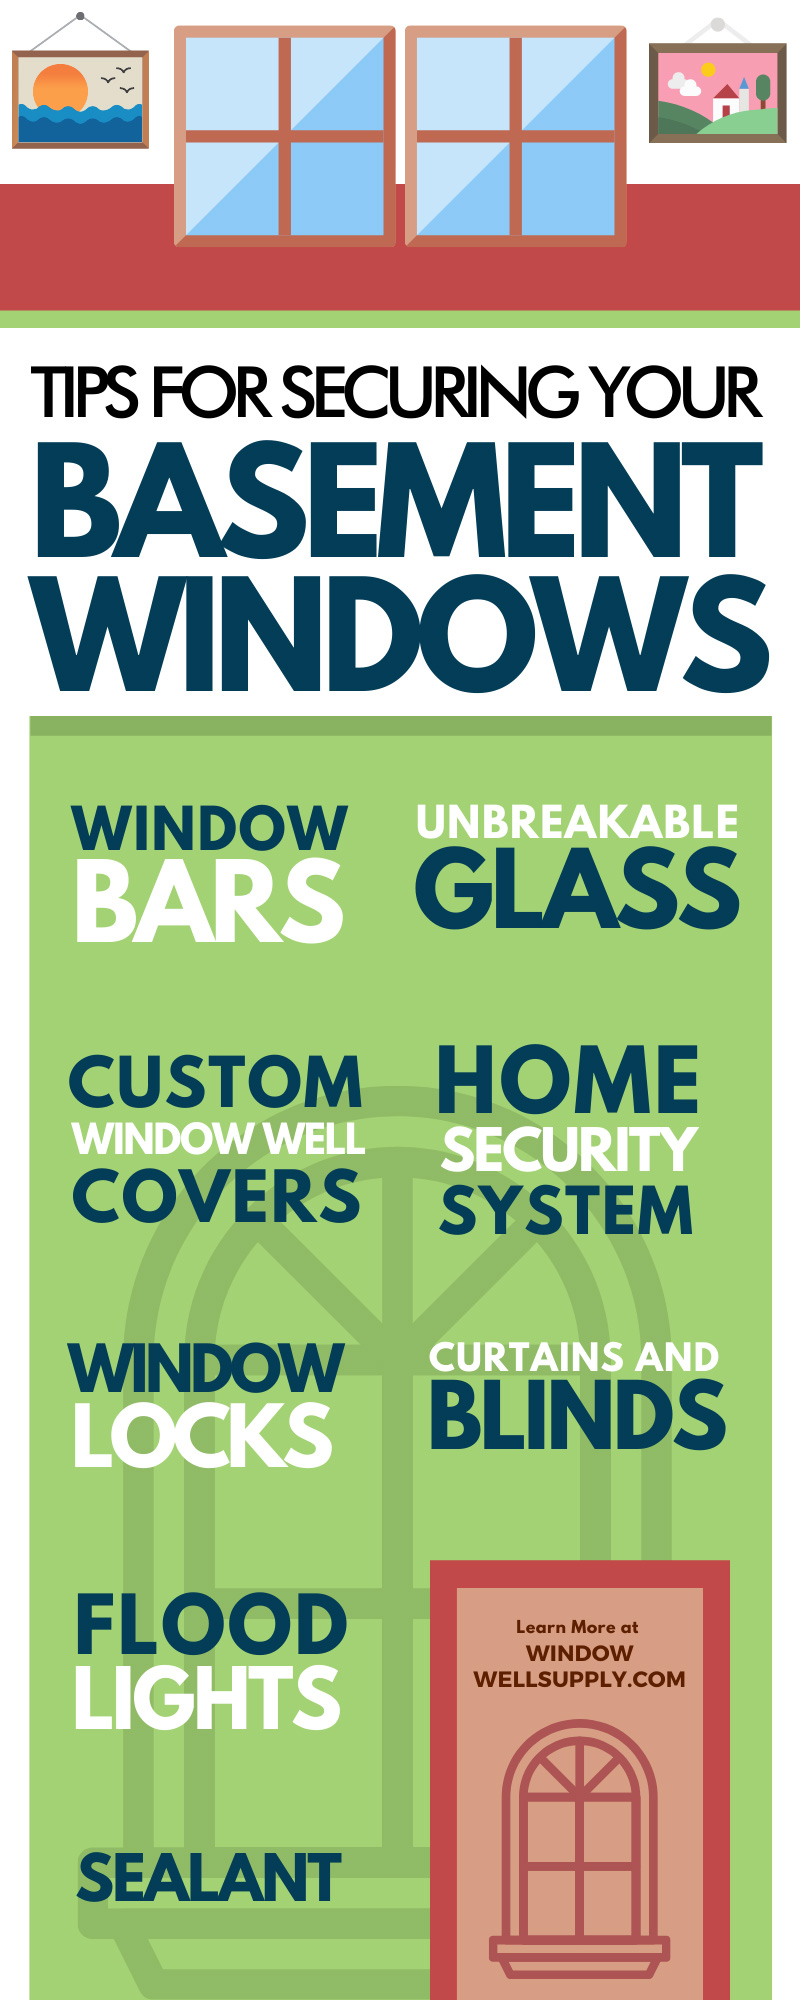 Tips for Securing Your Basement Windows